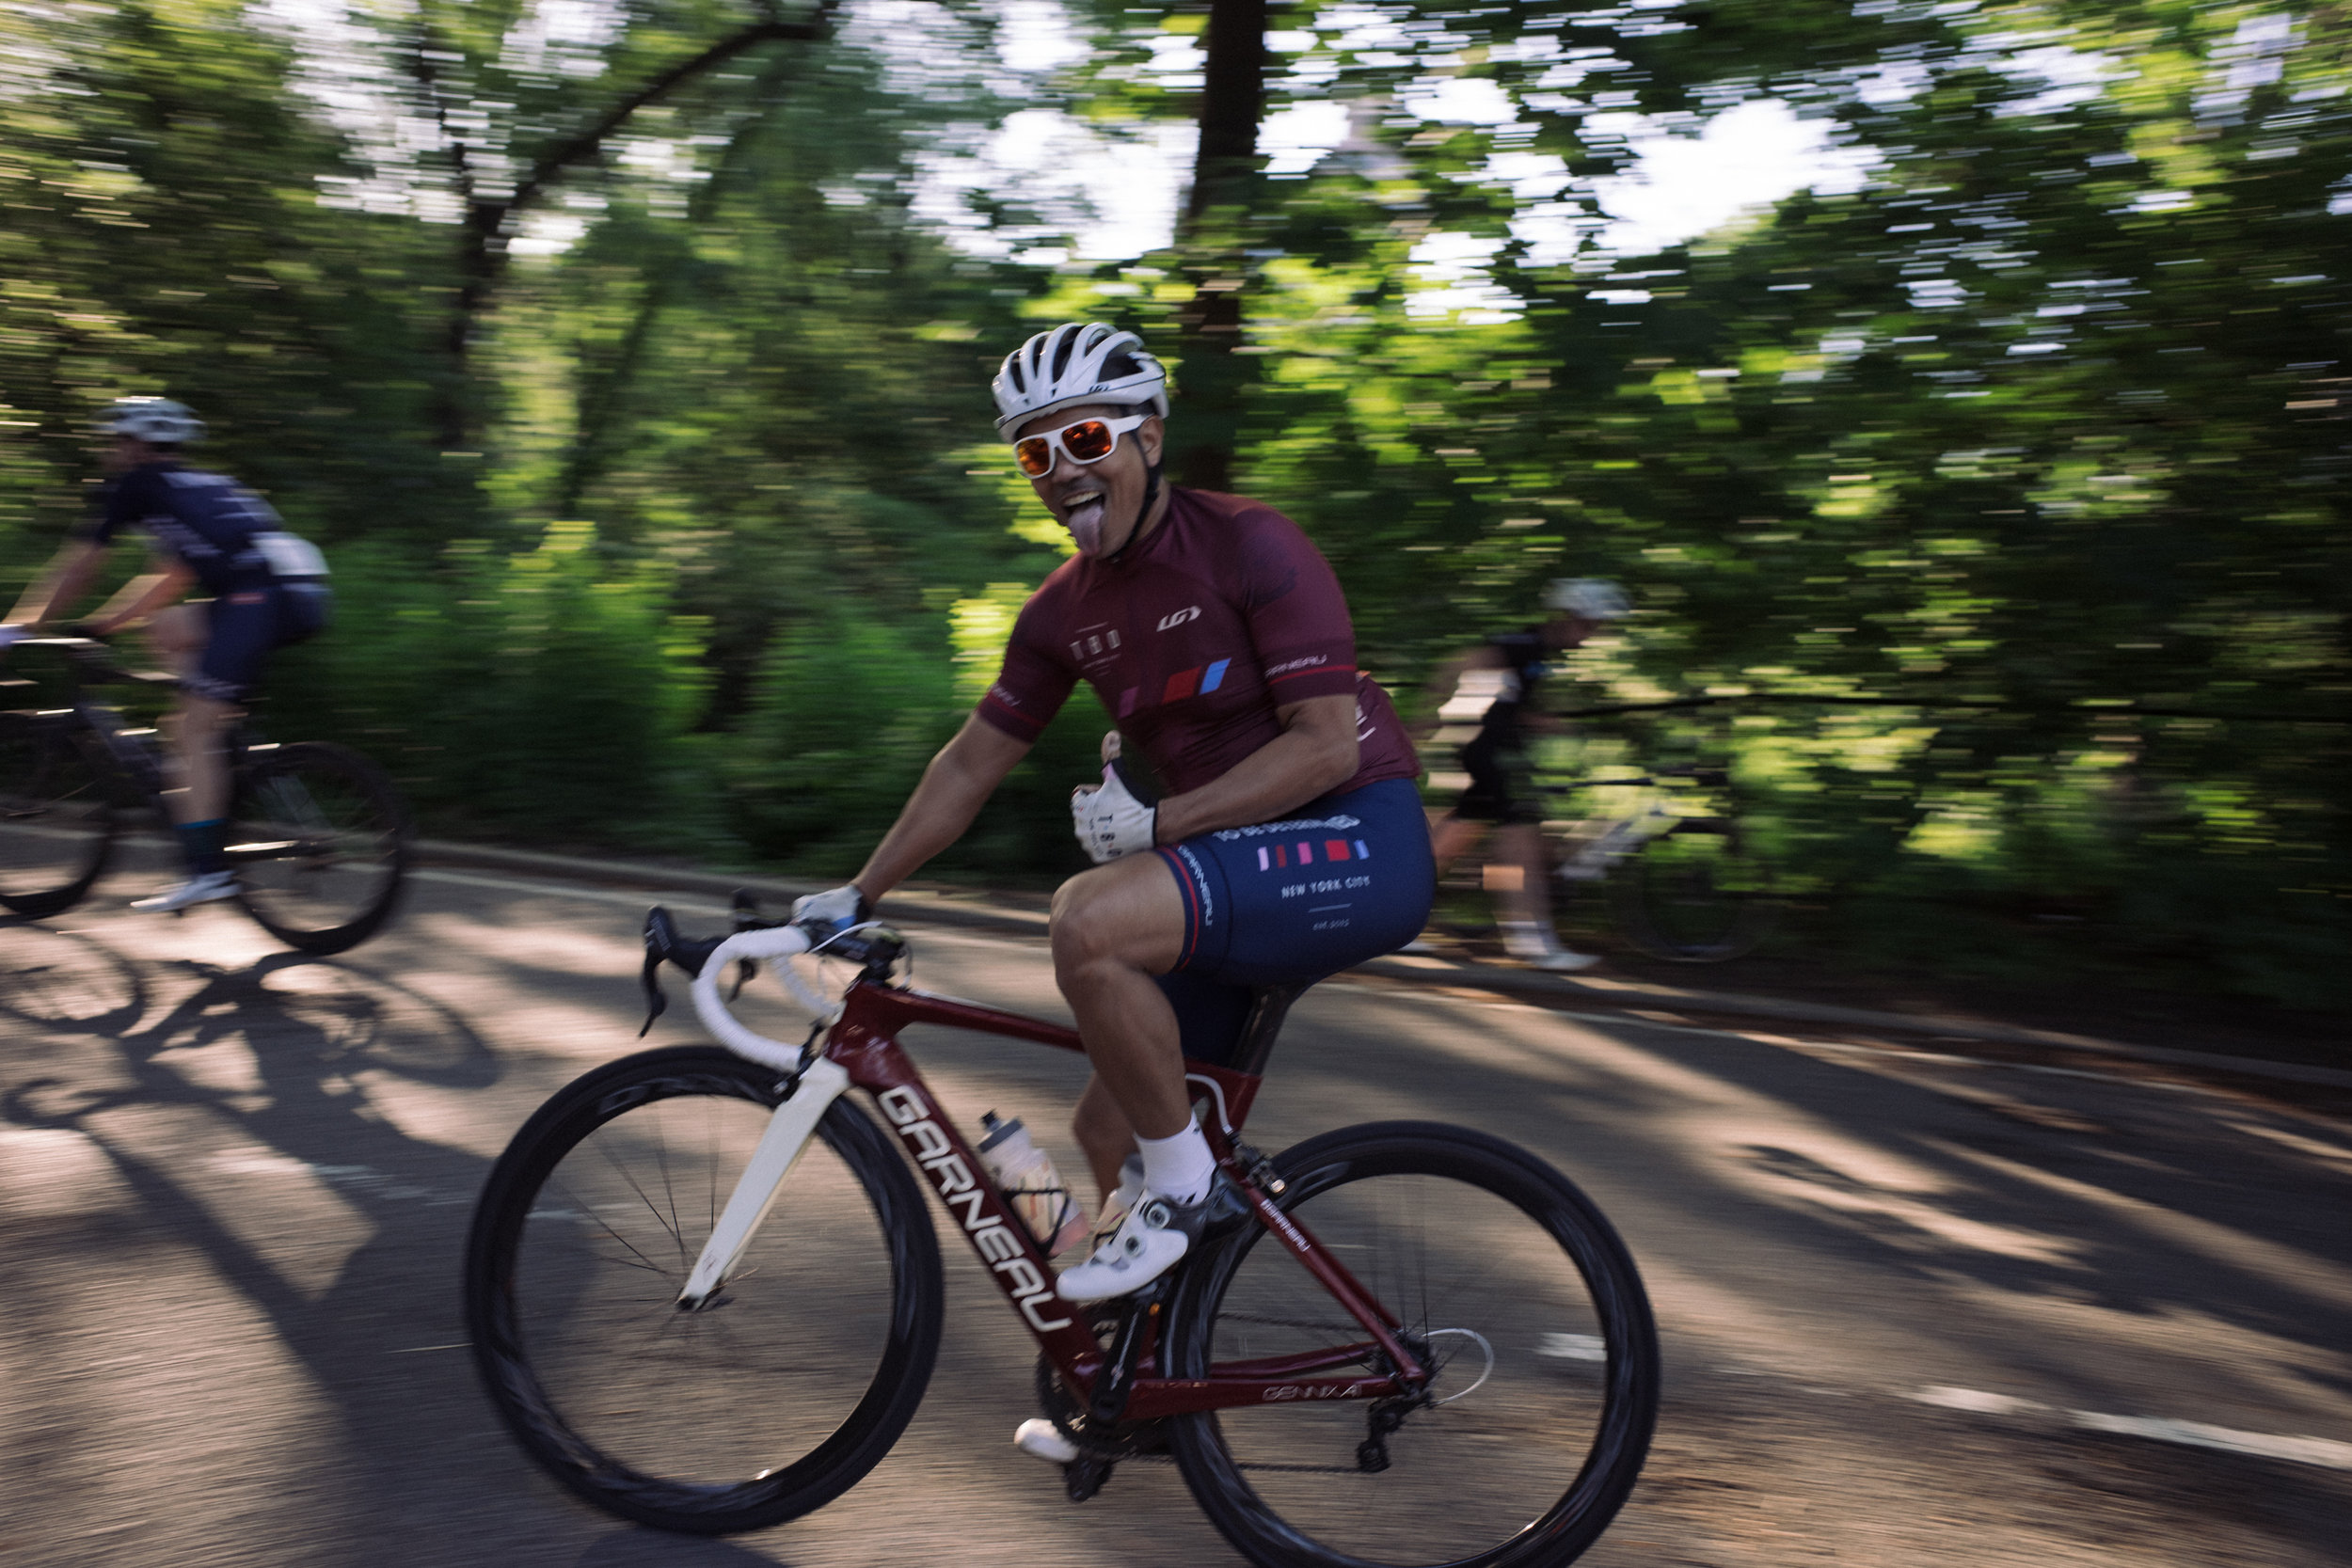 JB feeling stoked on finishing off a good day of racing in Central Park.